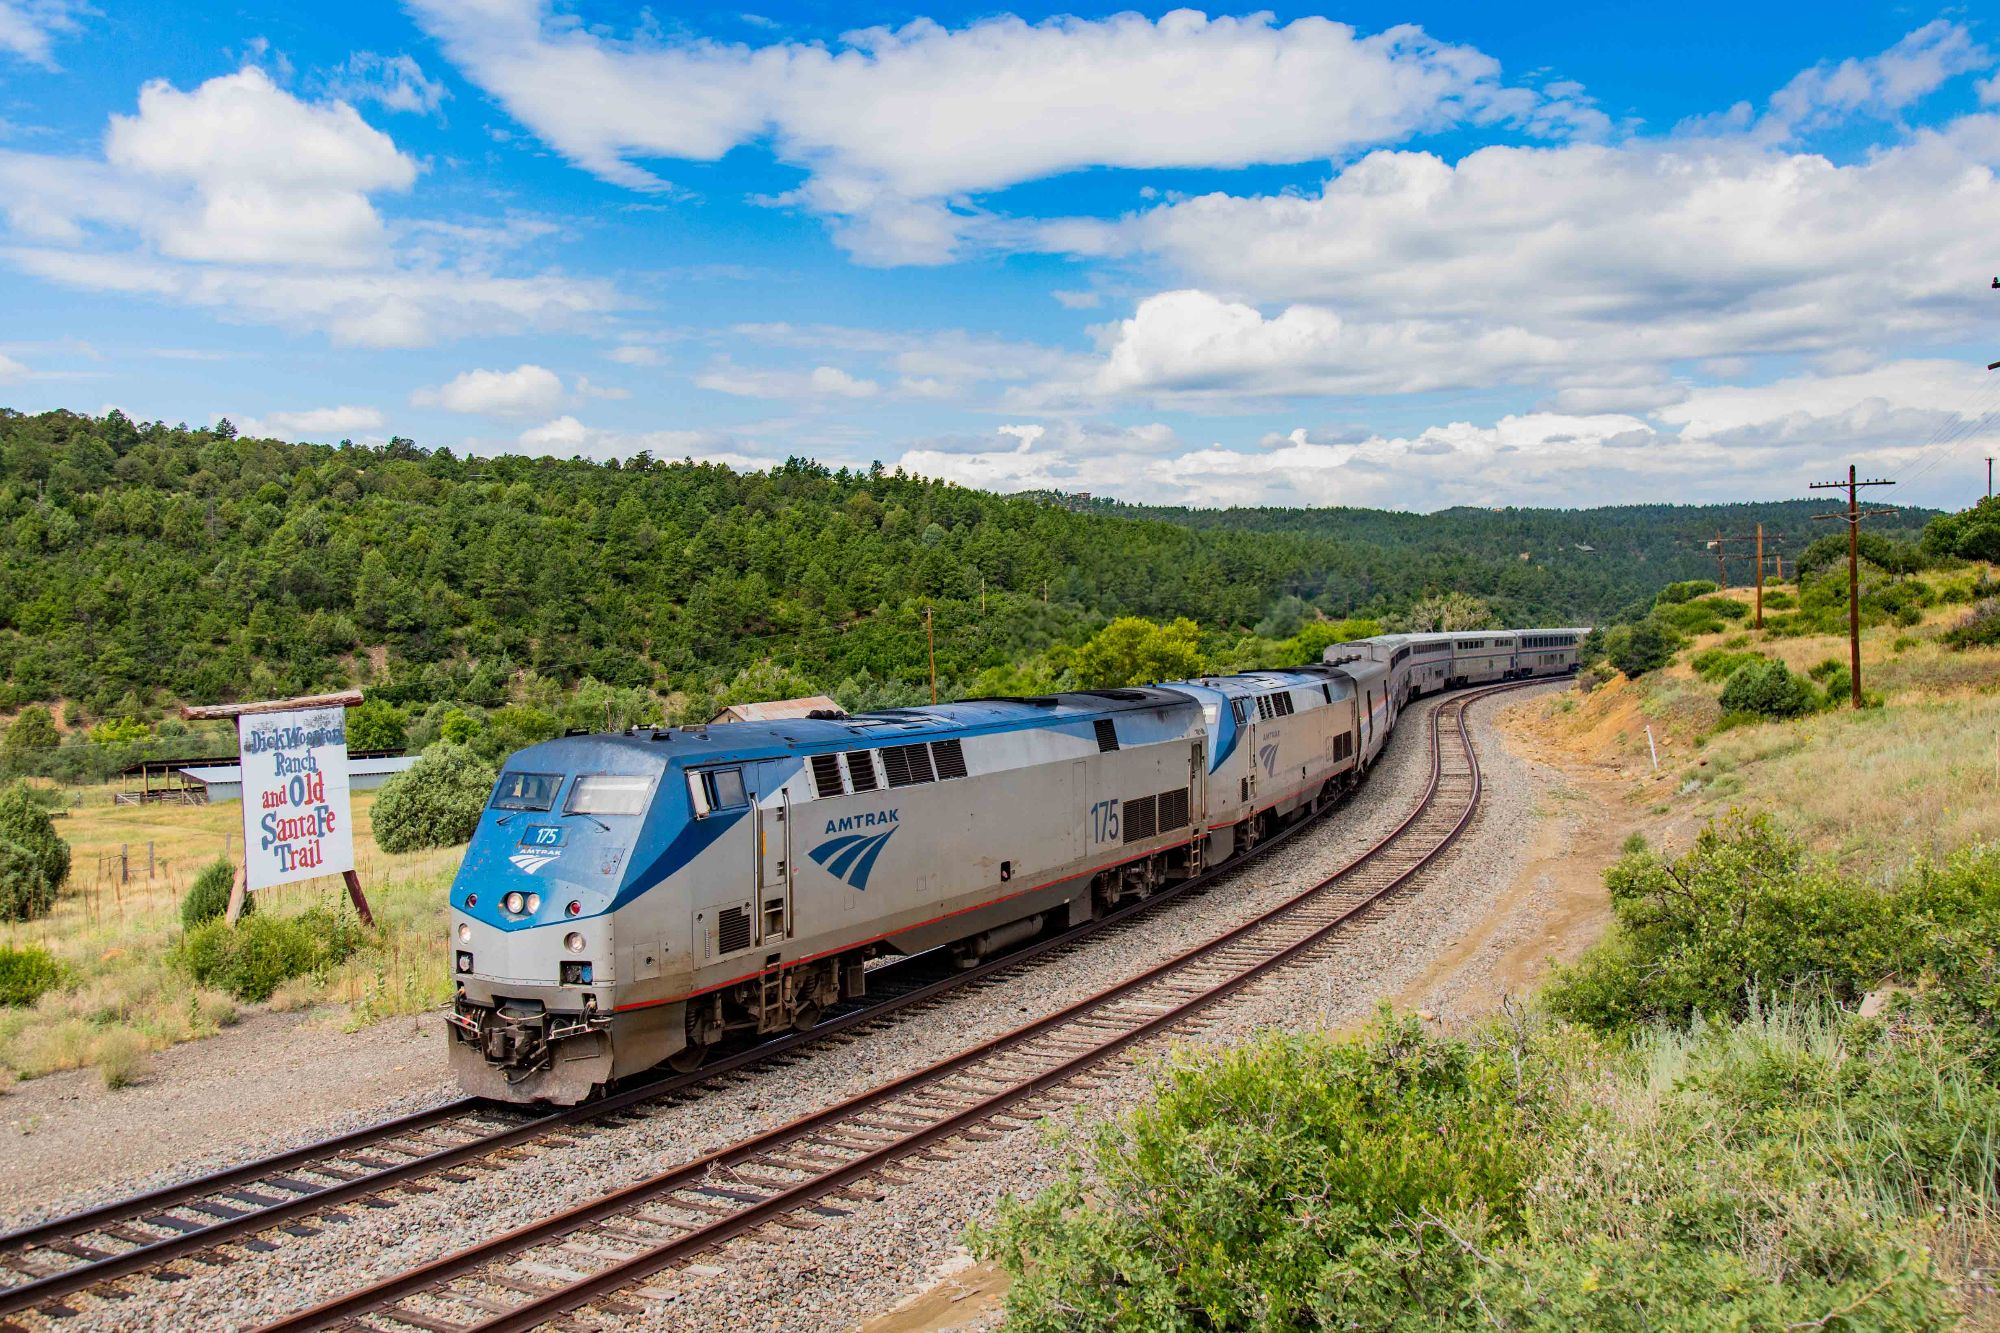 Image showing Amtrak train on the Santa Fe Trail